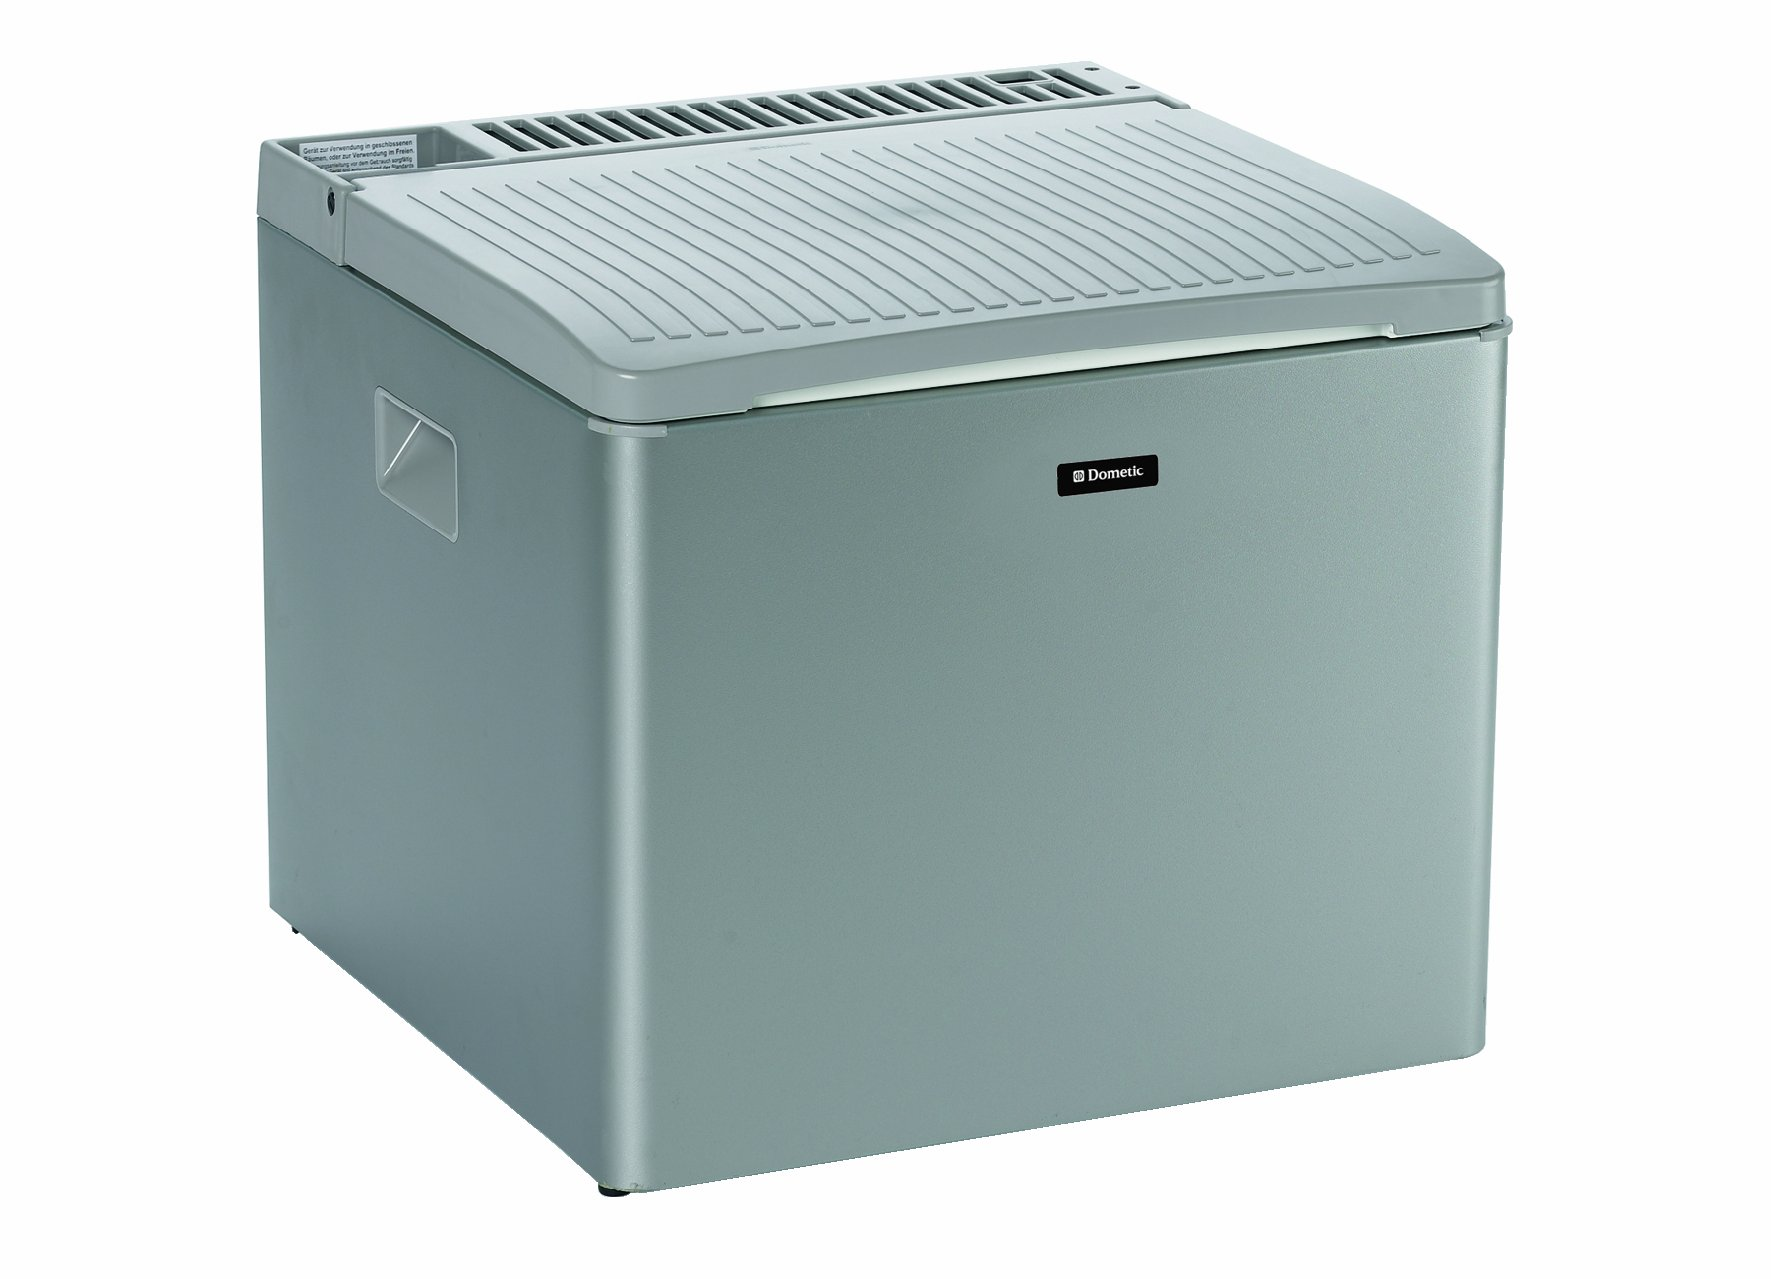 Dometic Gas Portable Cooler 1